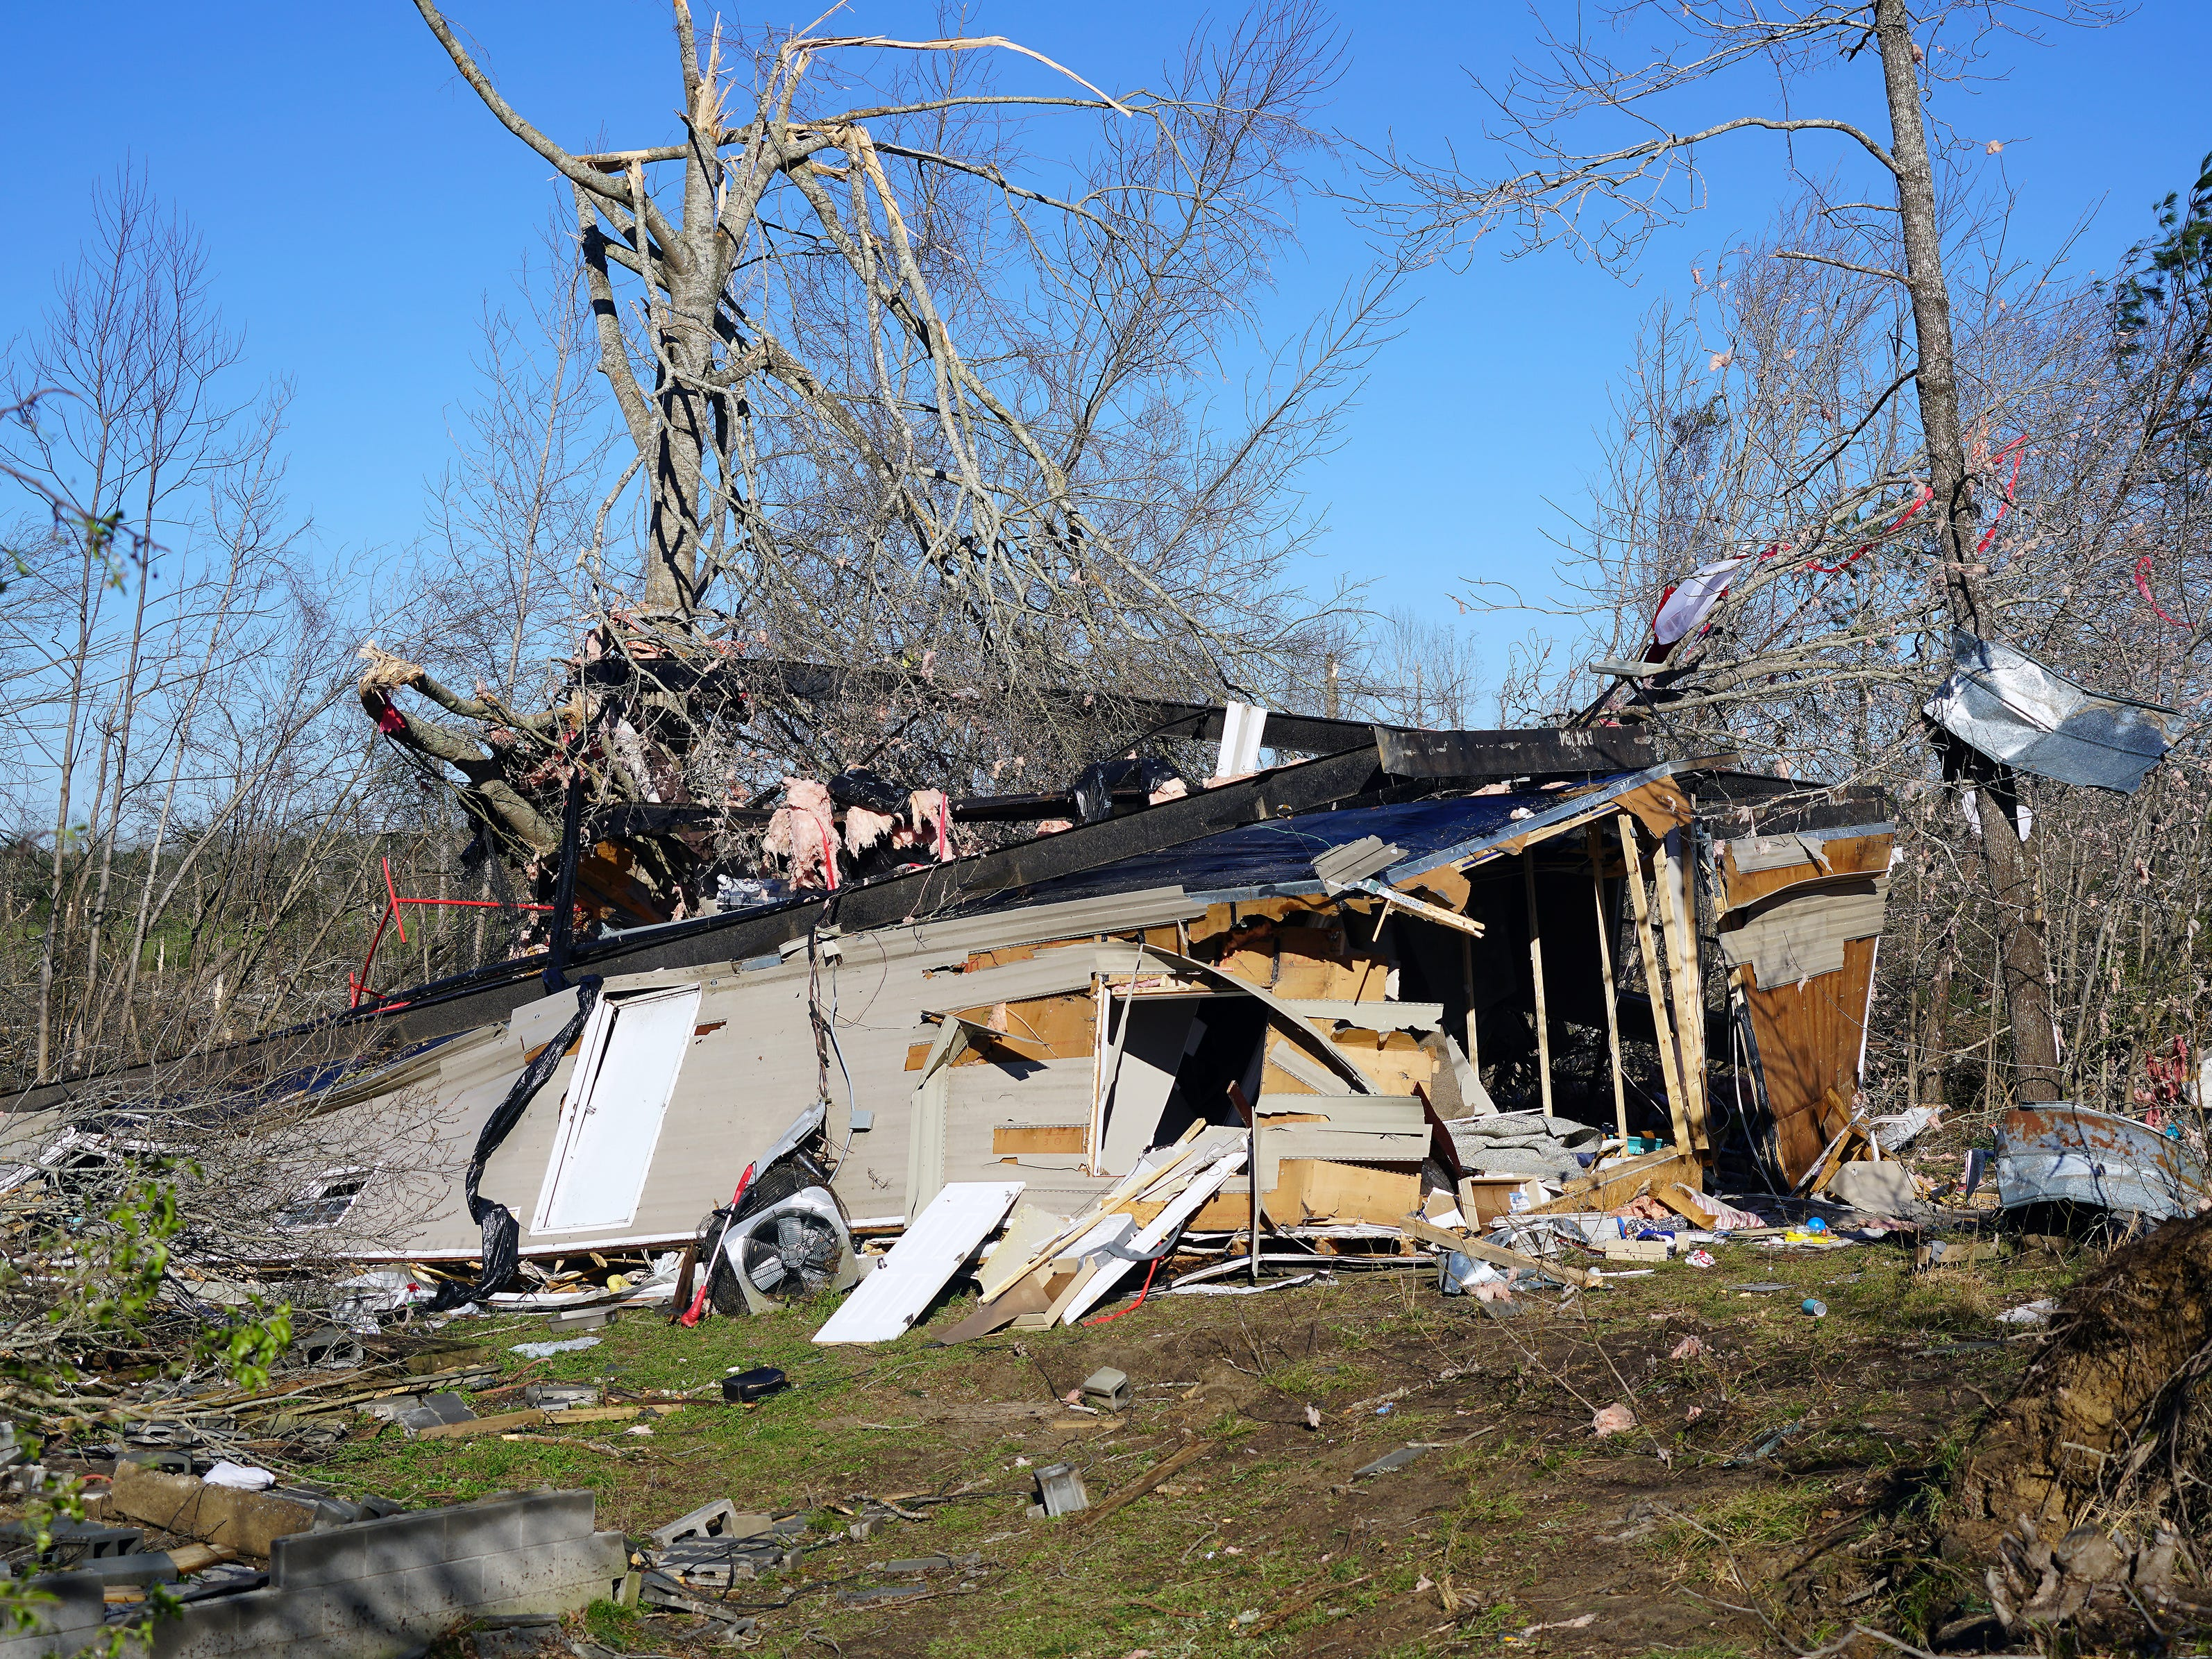 The remnants of Steve Whatley's house on March 5, 2019, where he and his family, along with a friend, sought refuge during the passage of the March 3 tornado in Beauregard, Ala.  A family friend grabbed a chainsaw from the wreckage to help rescue trapped survivors. Whatley's mother in law was killed when the mobile home's wall collapsed onto her.